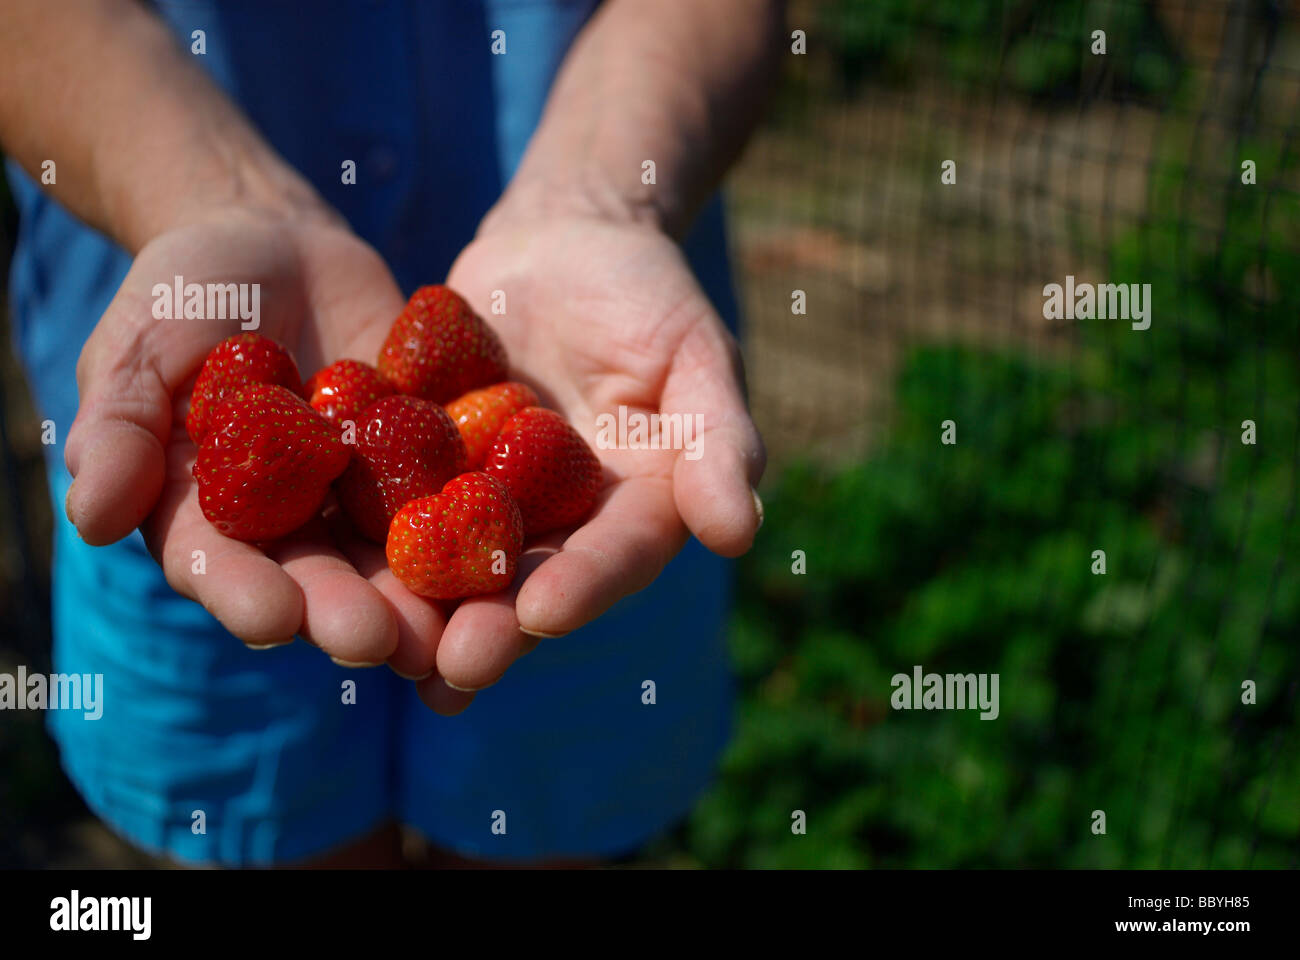 Woman's hands holding ripe strawberries Stock Photo